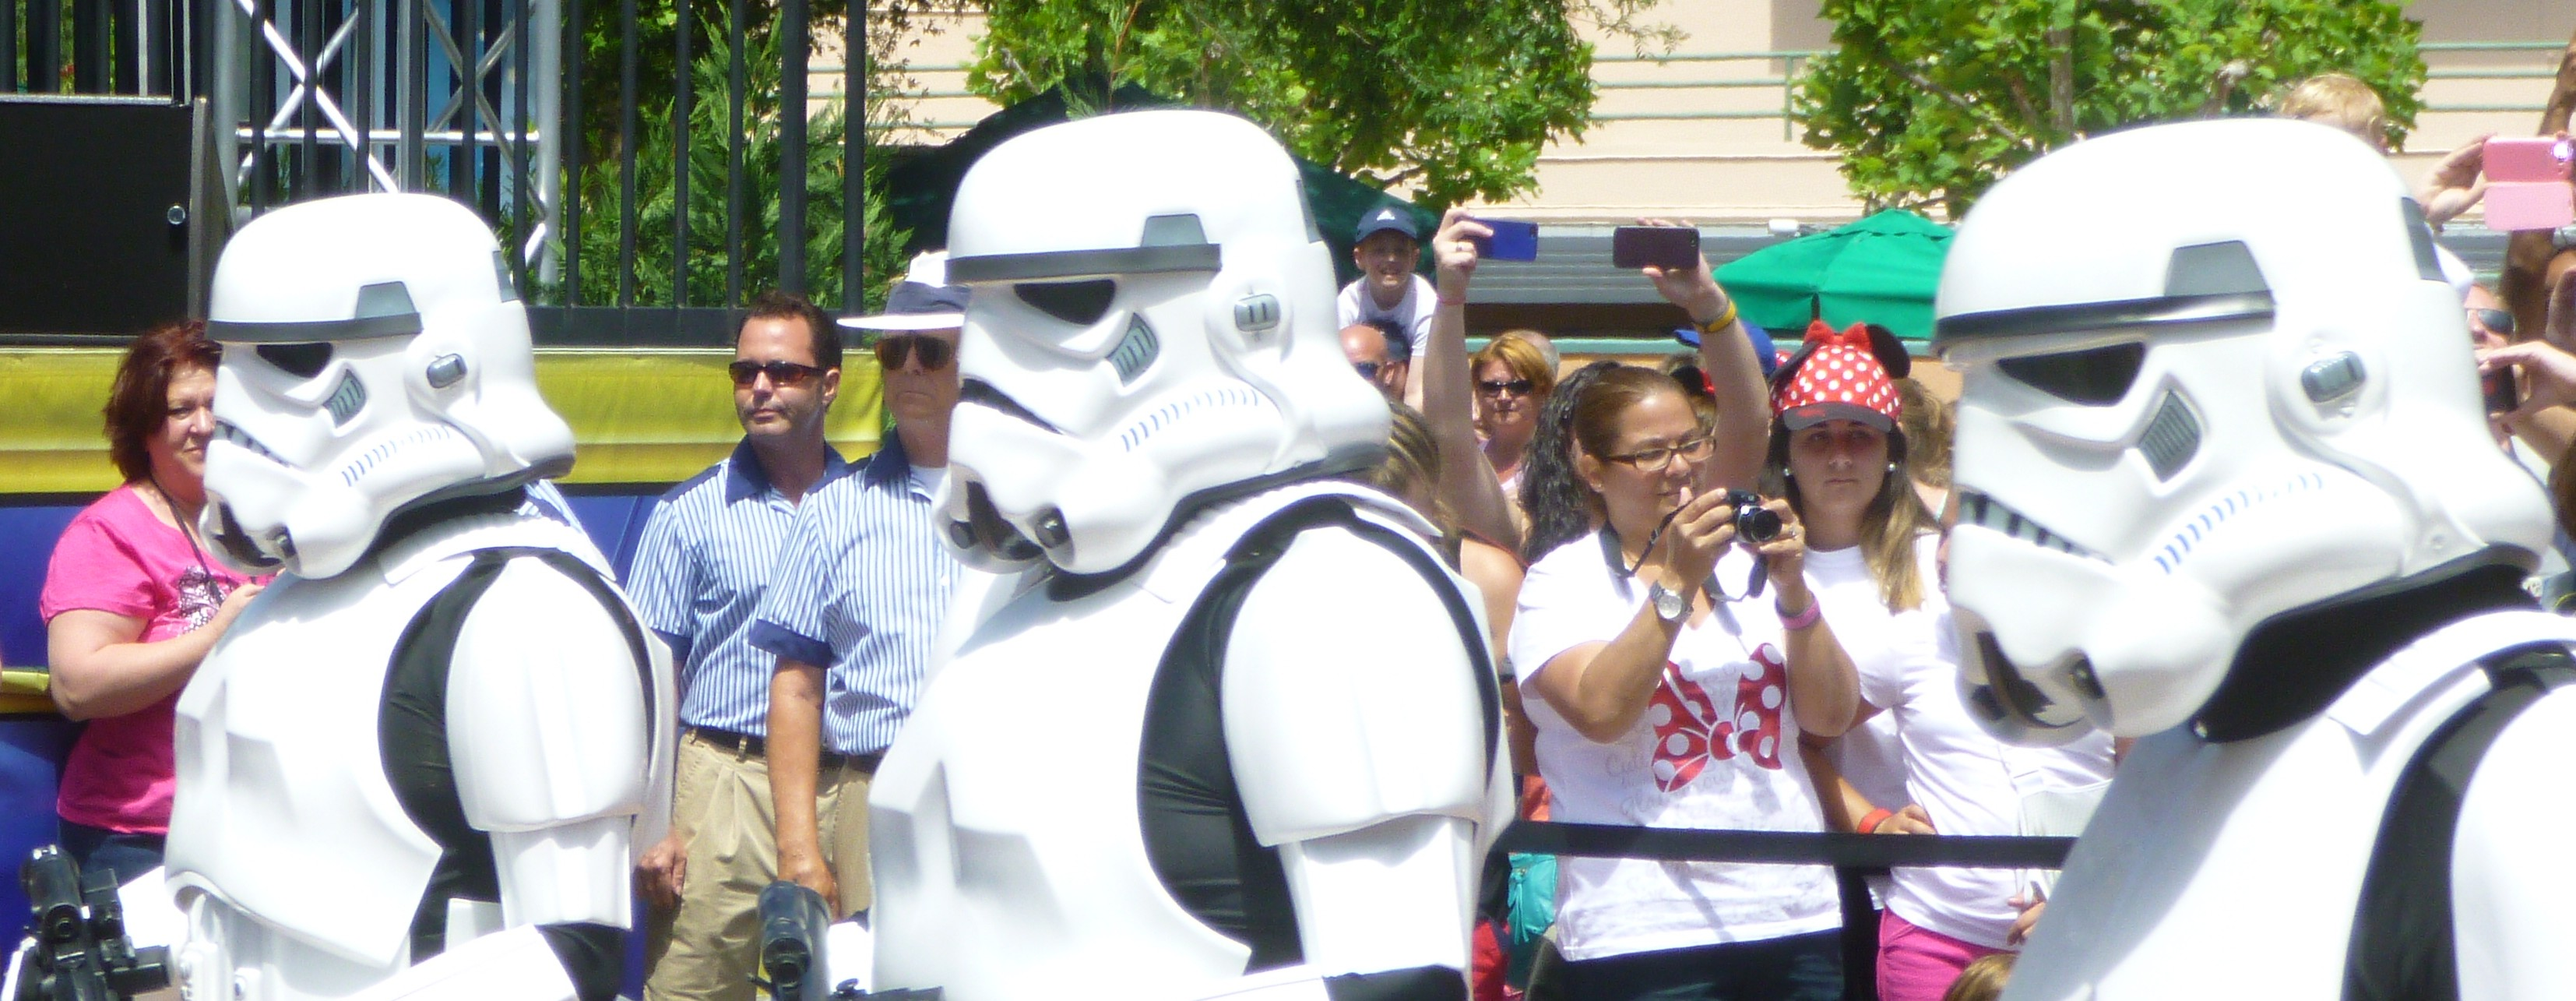 May The Magic Be With You at Star Wars Weekends in Disney's Hollywood Studios